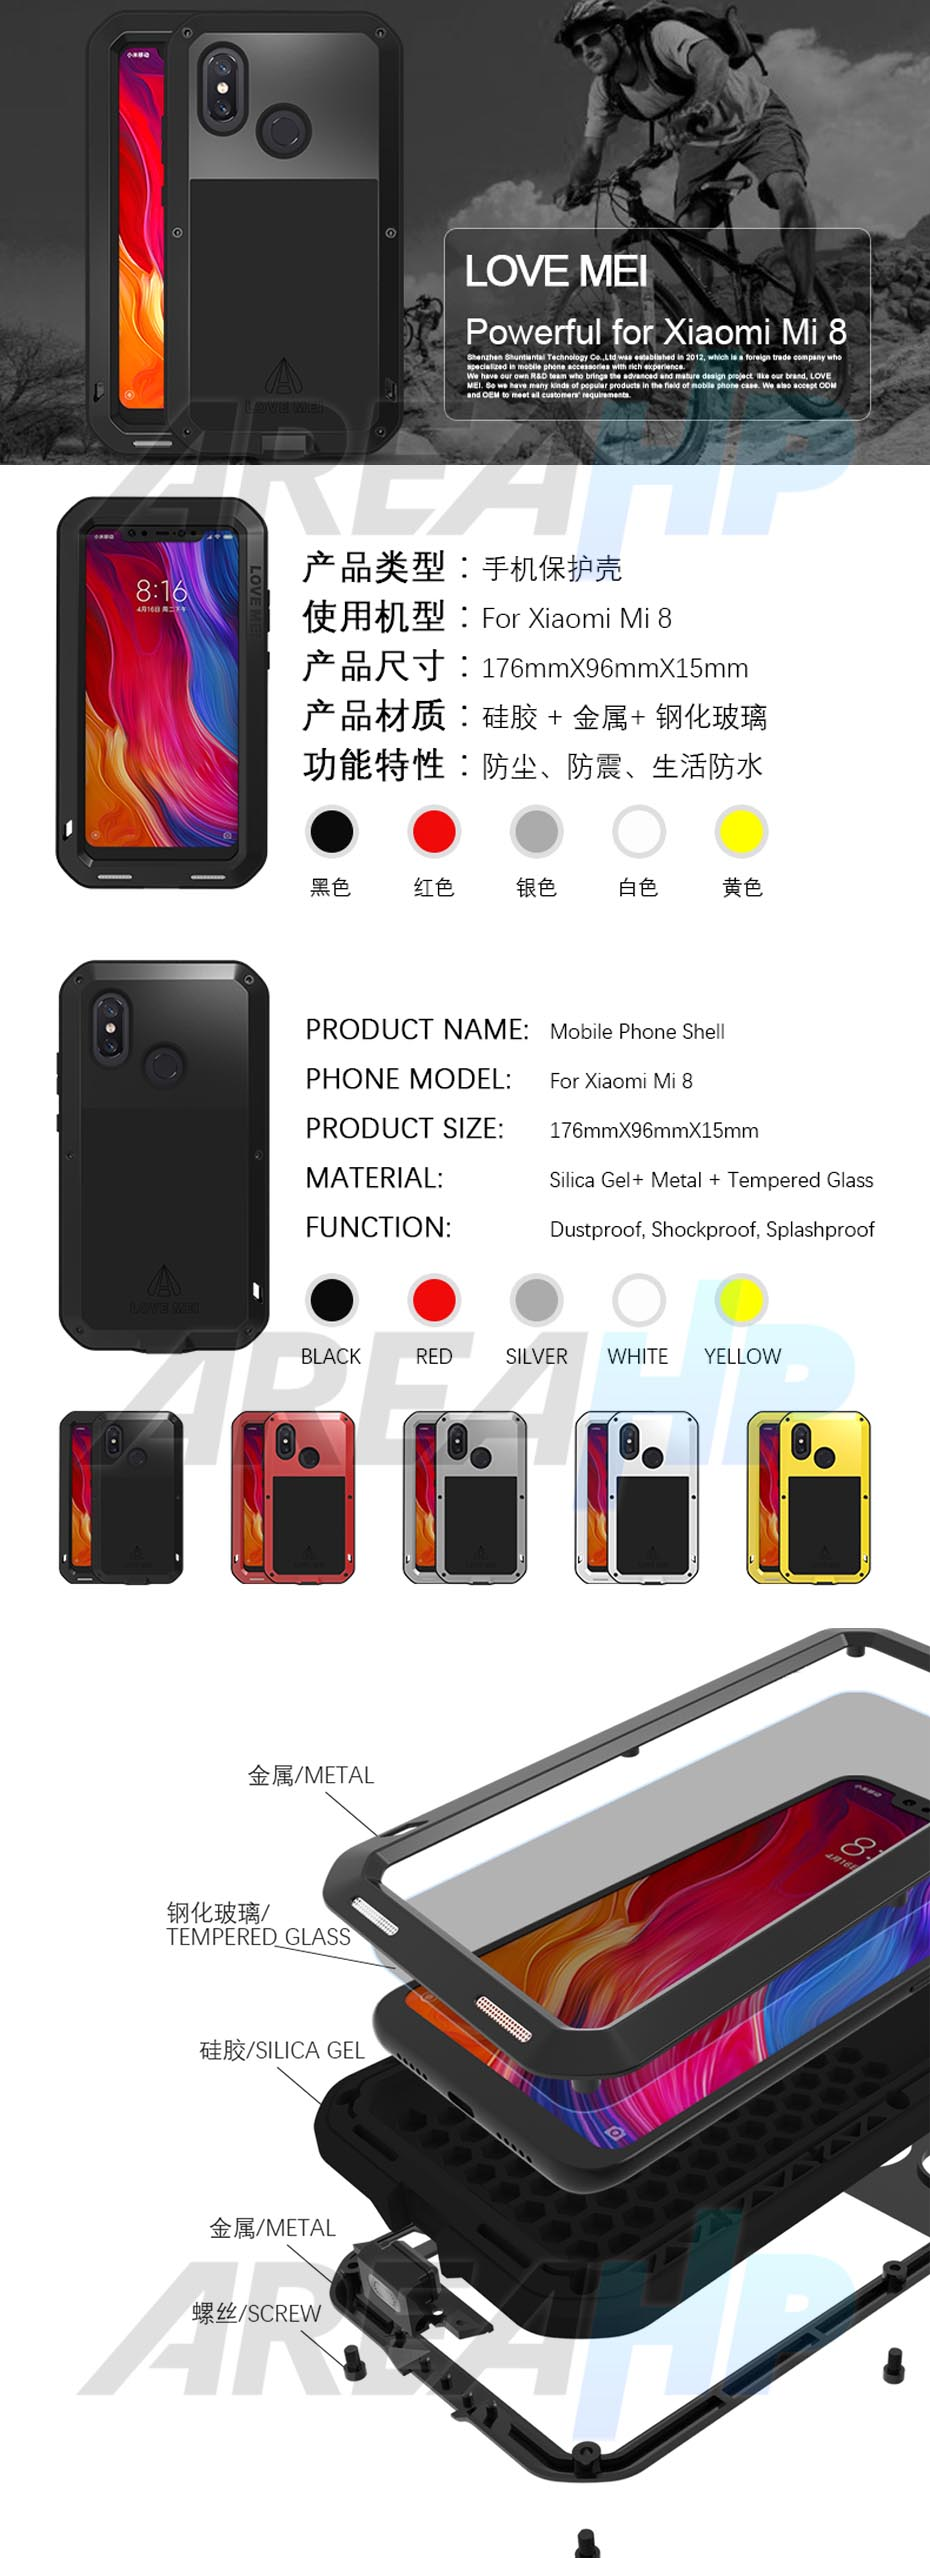 Love Mei Powerful Case for Xiao Mi 8 Overview